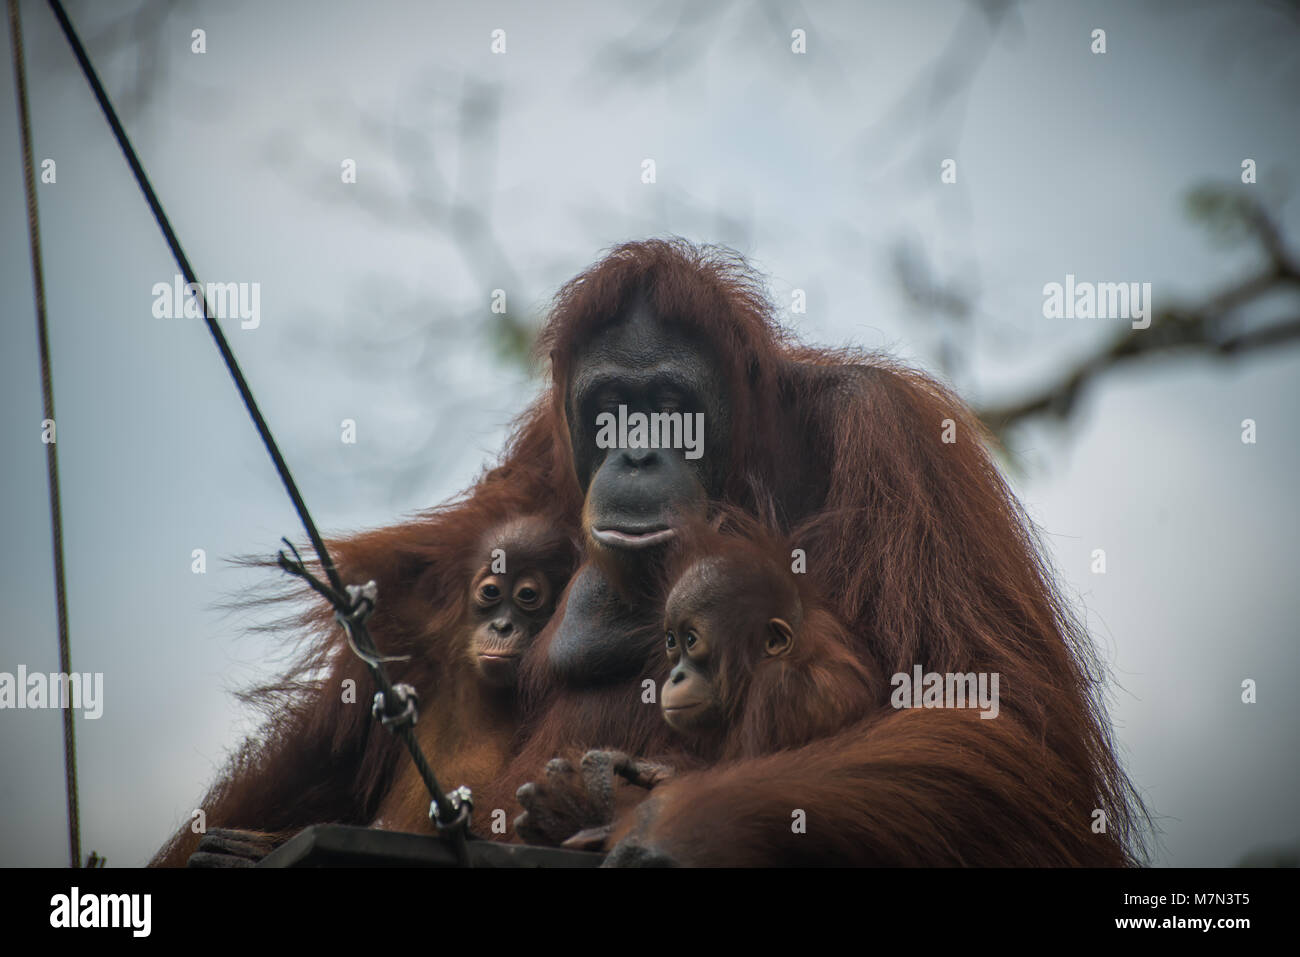 Sad orangutan with two children sits together. Pensive primate with closed eyes embraces two offsprings. Monkey - Stock Image